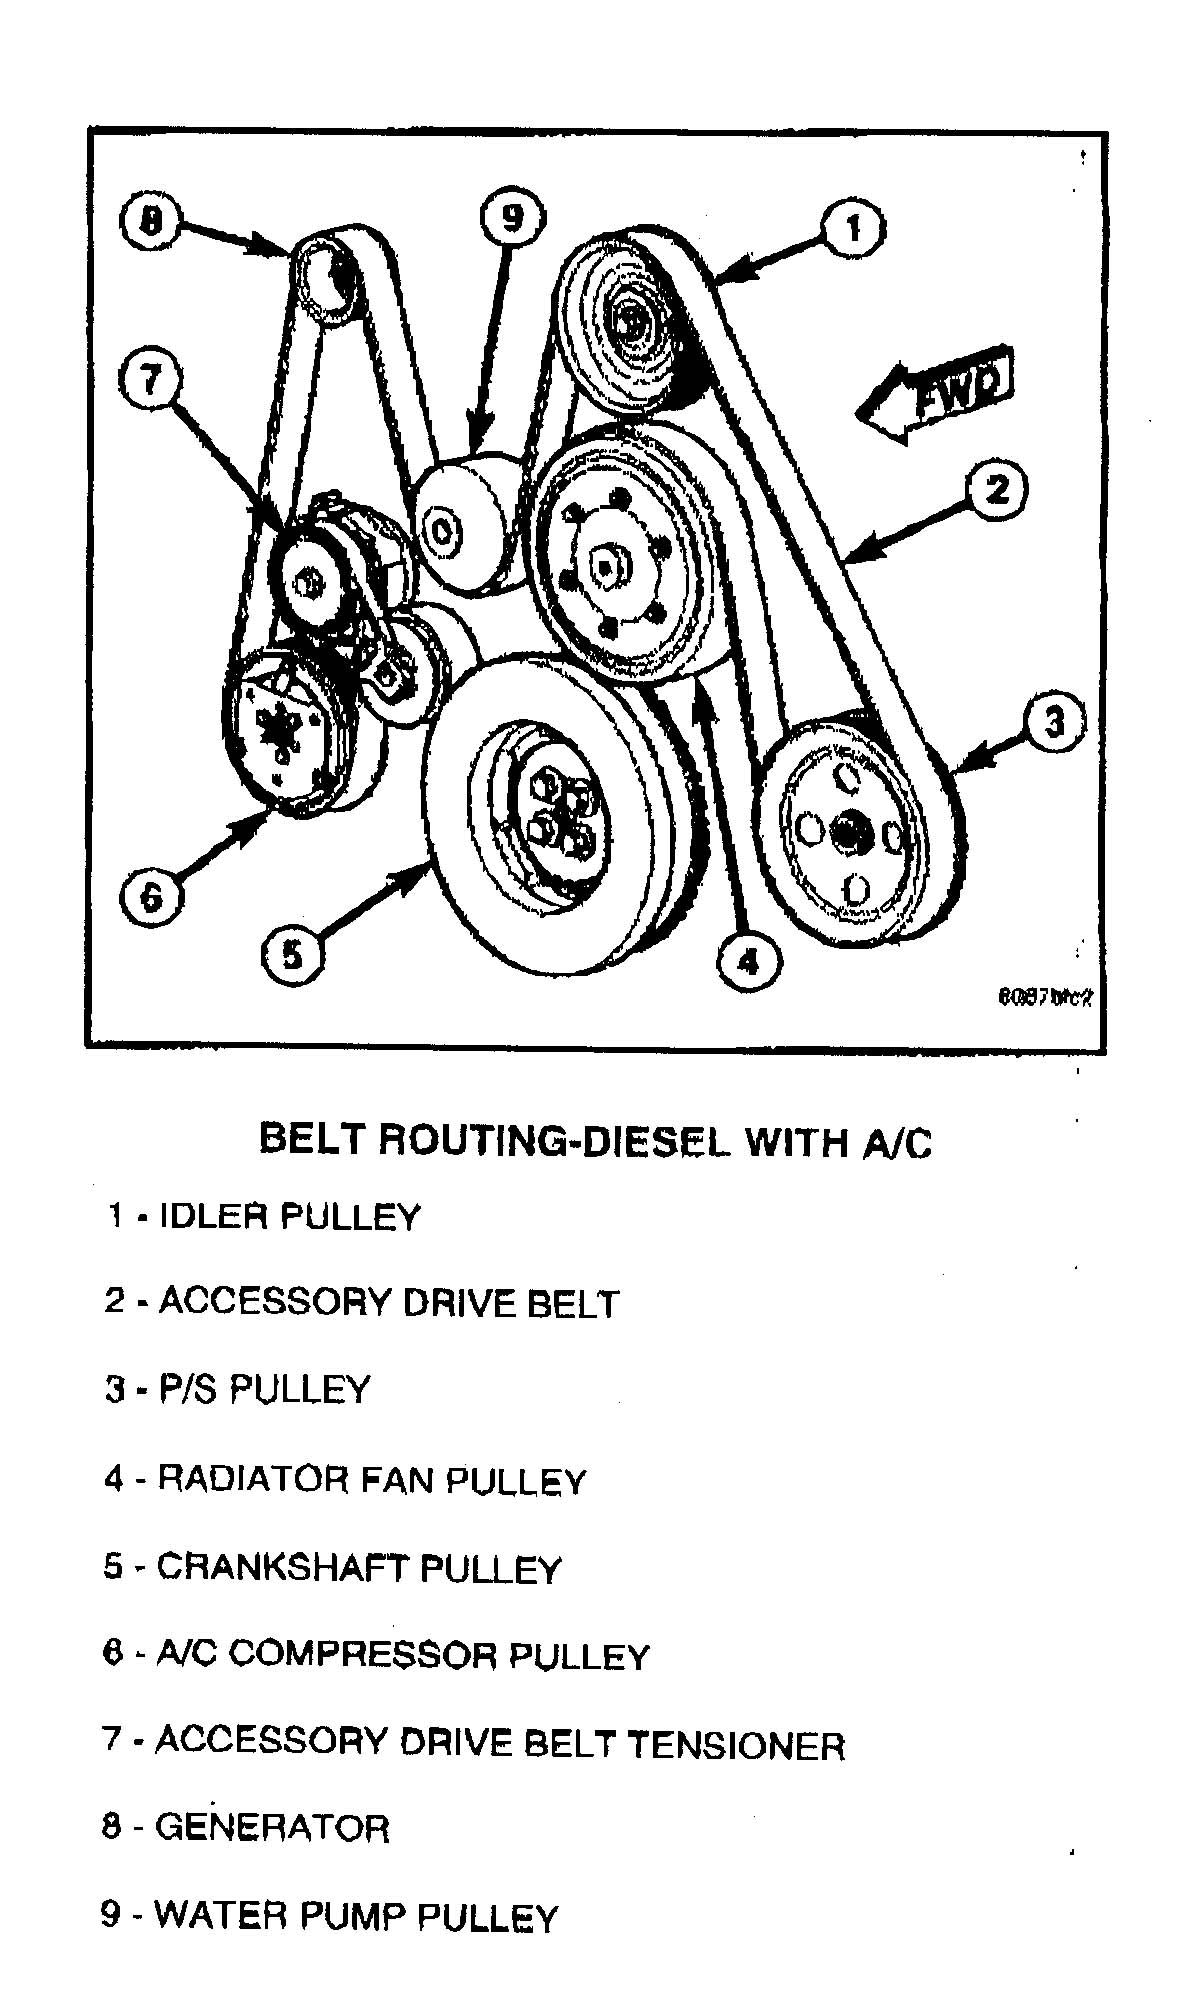 Ford 6 7sel Serpentine Belt Diagram Ford Auto Fuse Box Diagram